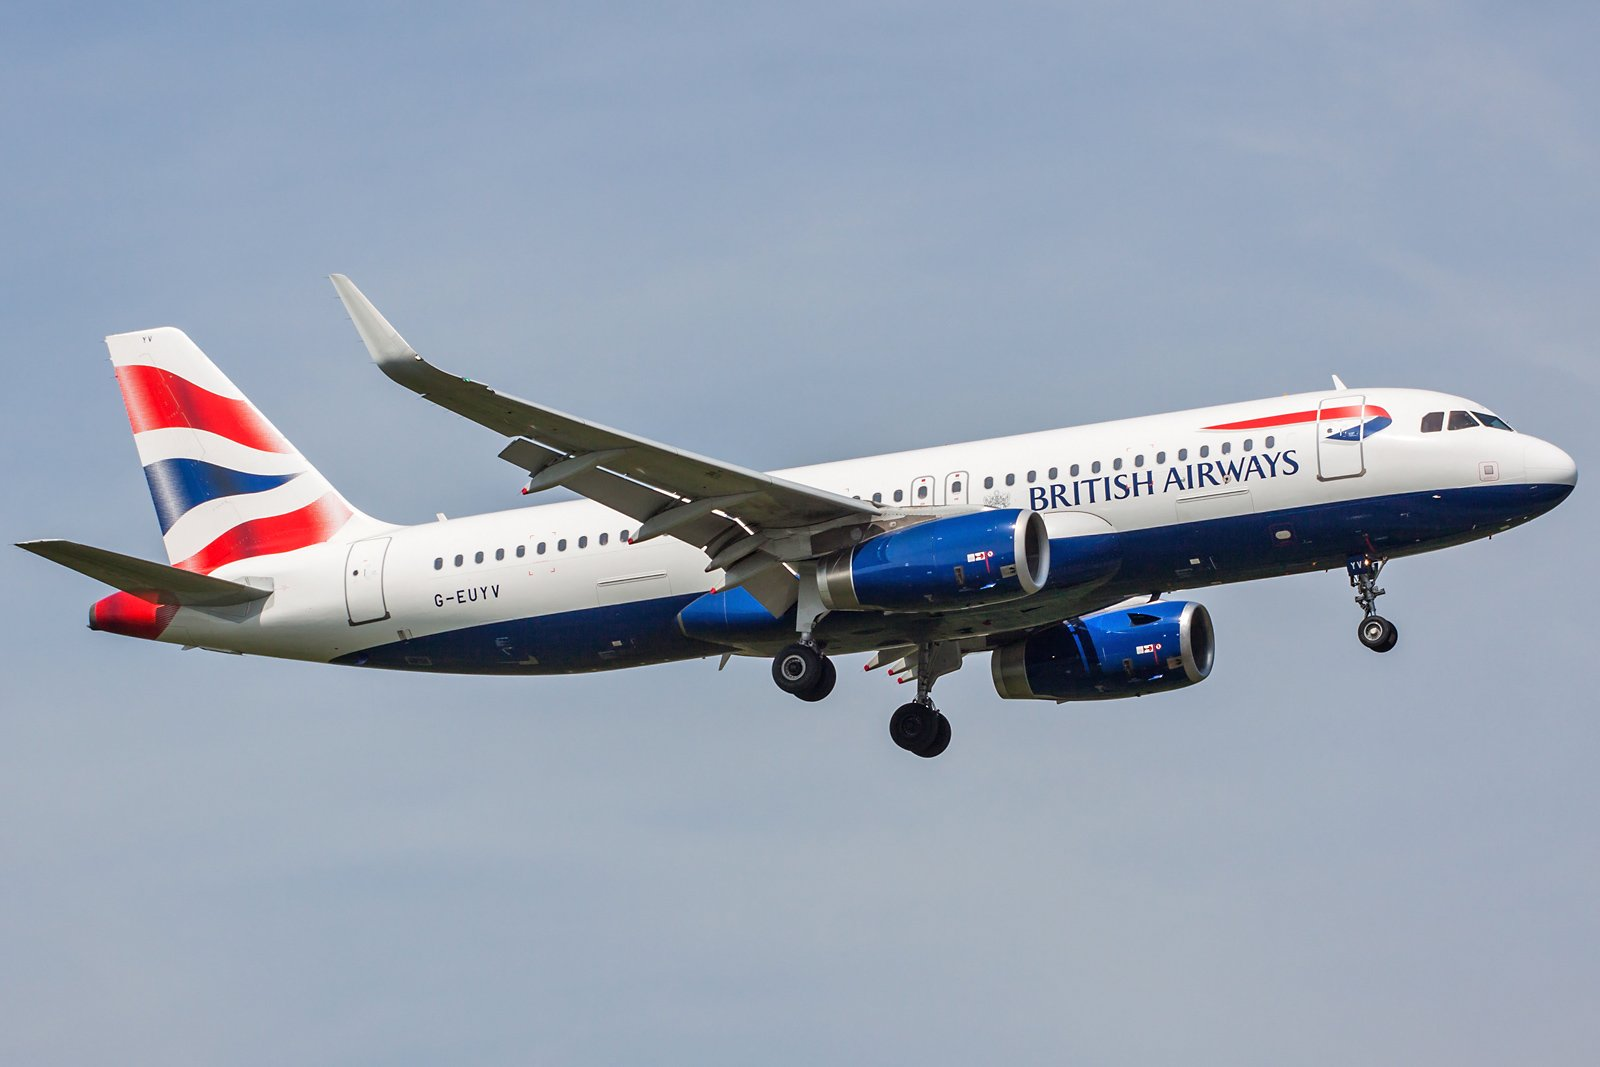 British Airways Airbus A320-232(WL) G-EUYV